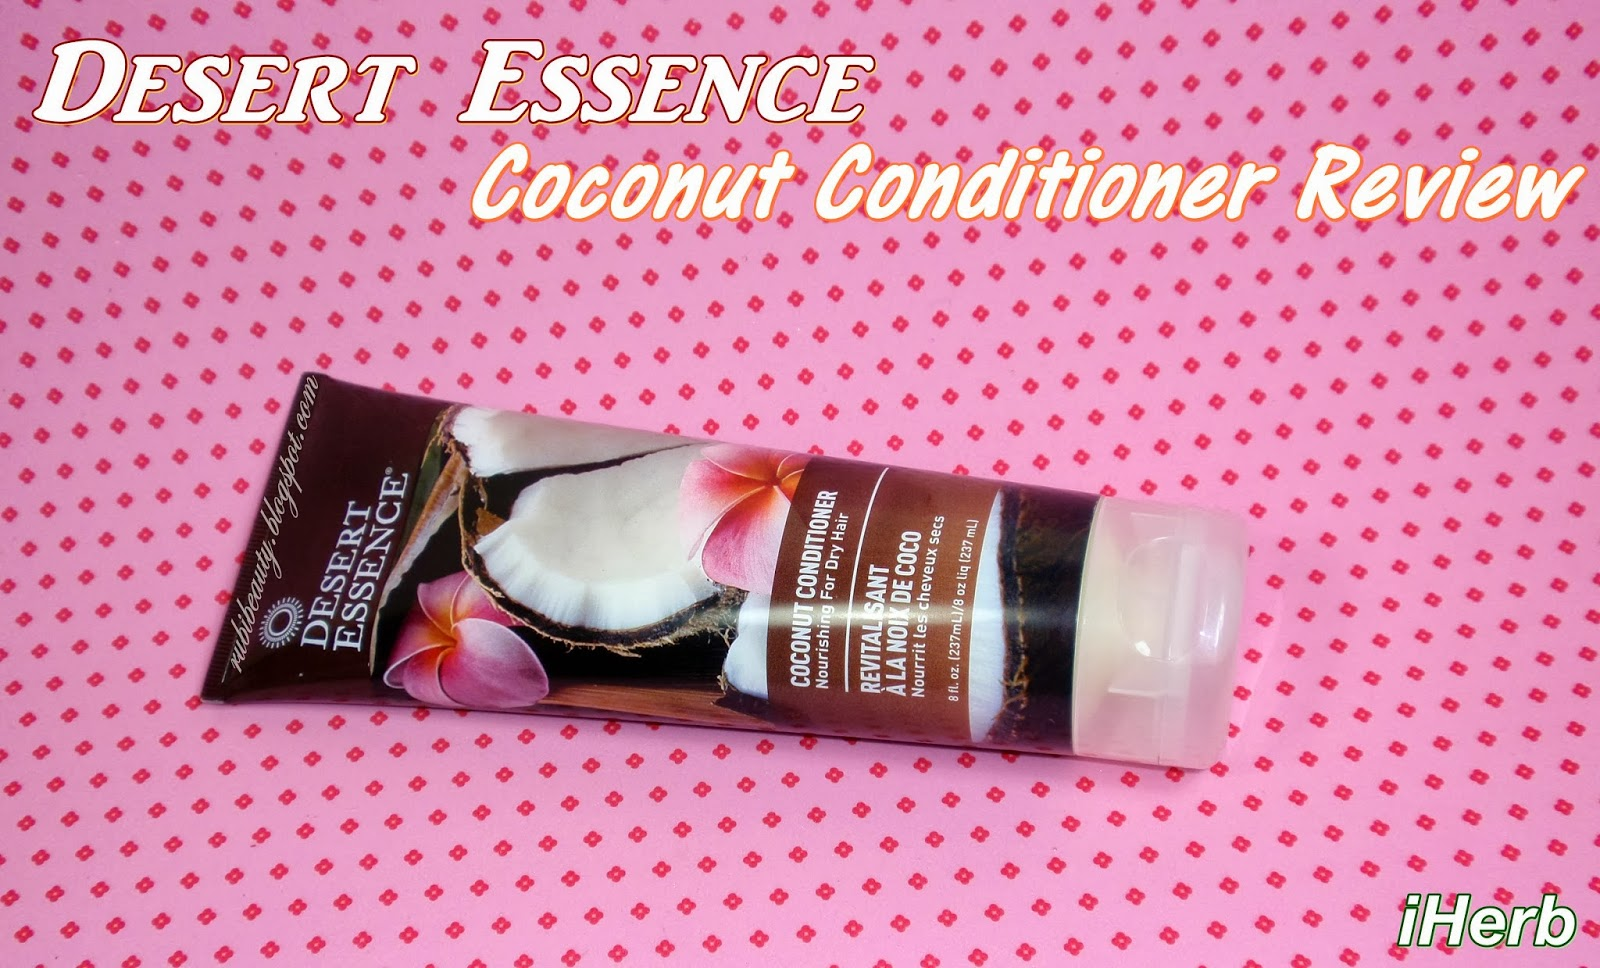 review desert essence coconut conditioner acondicionador coco iherb